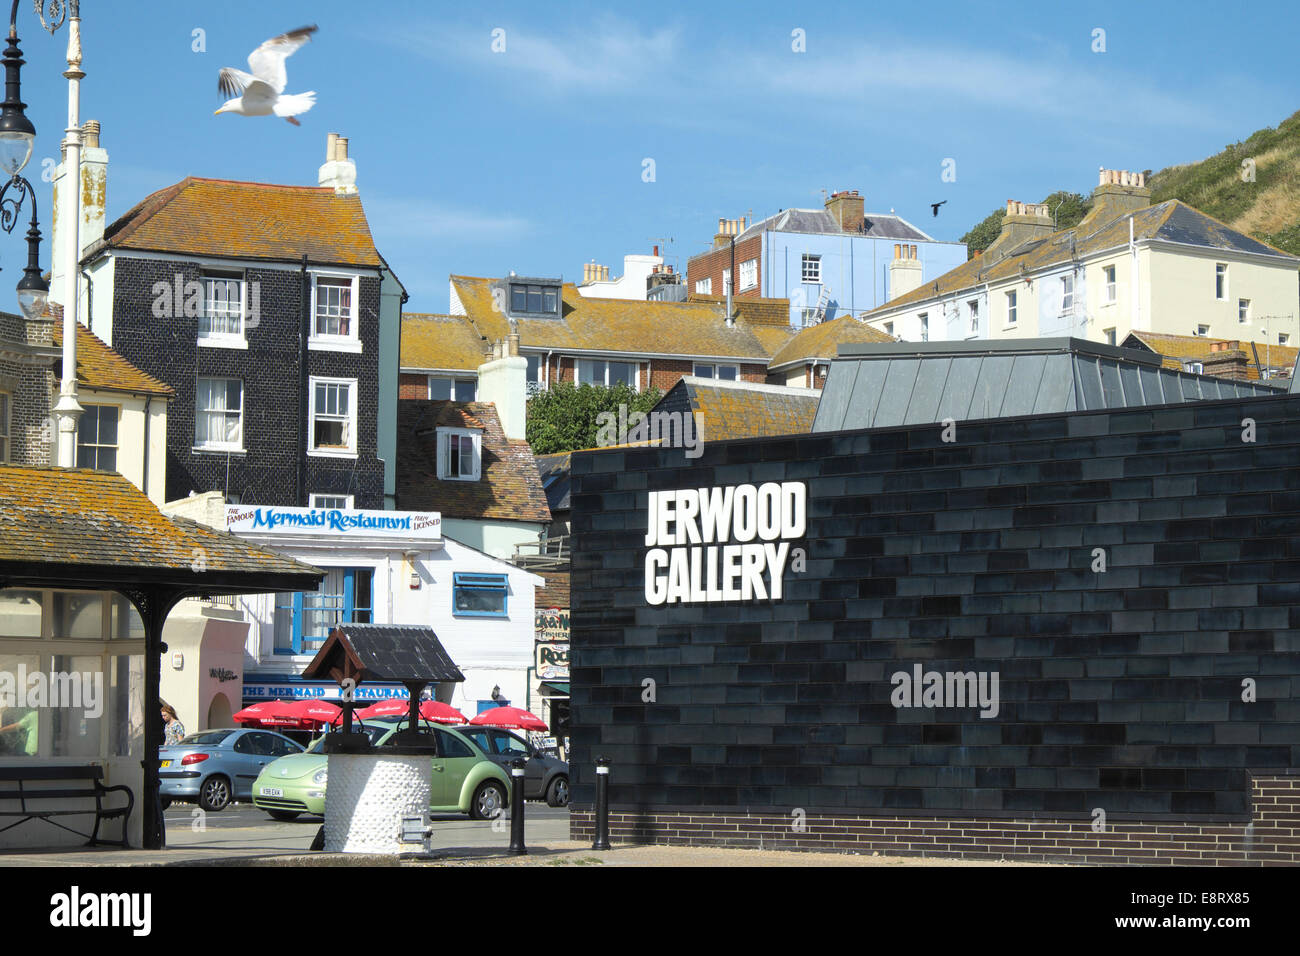 The Jerwood Art Gallery Hastings Old Town East Sussex England UK GB - Stock Image